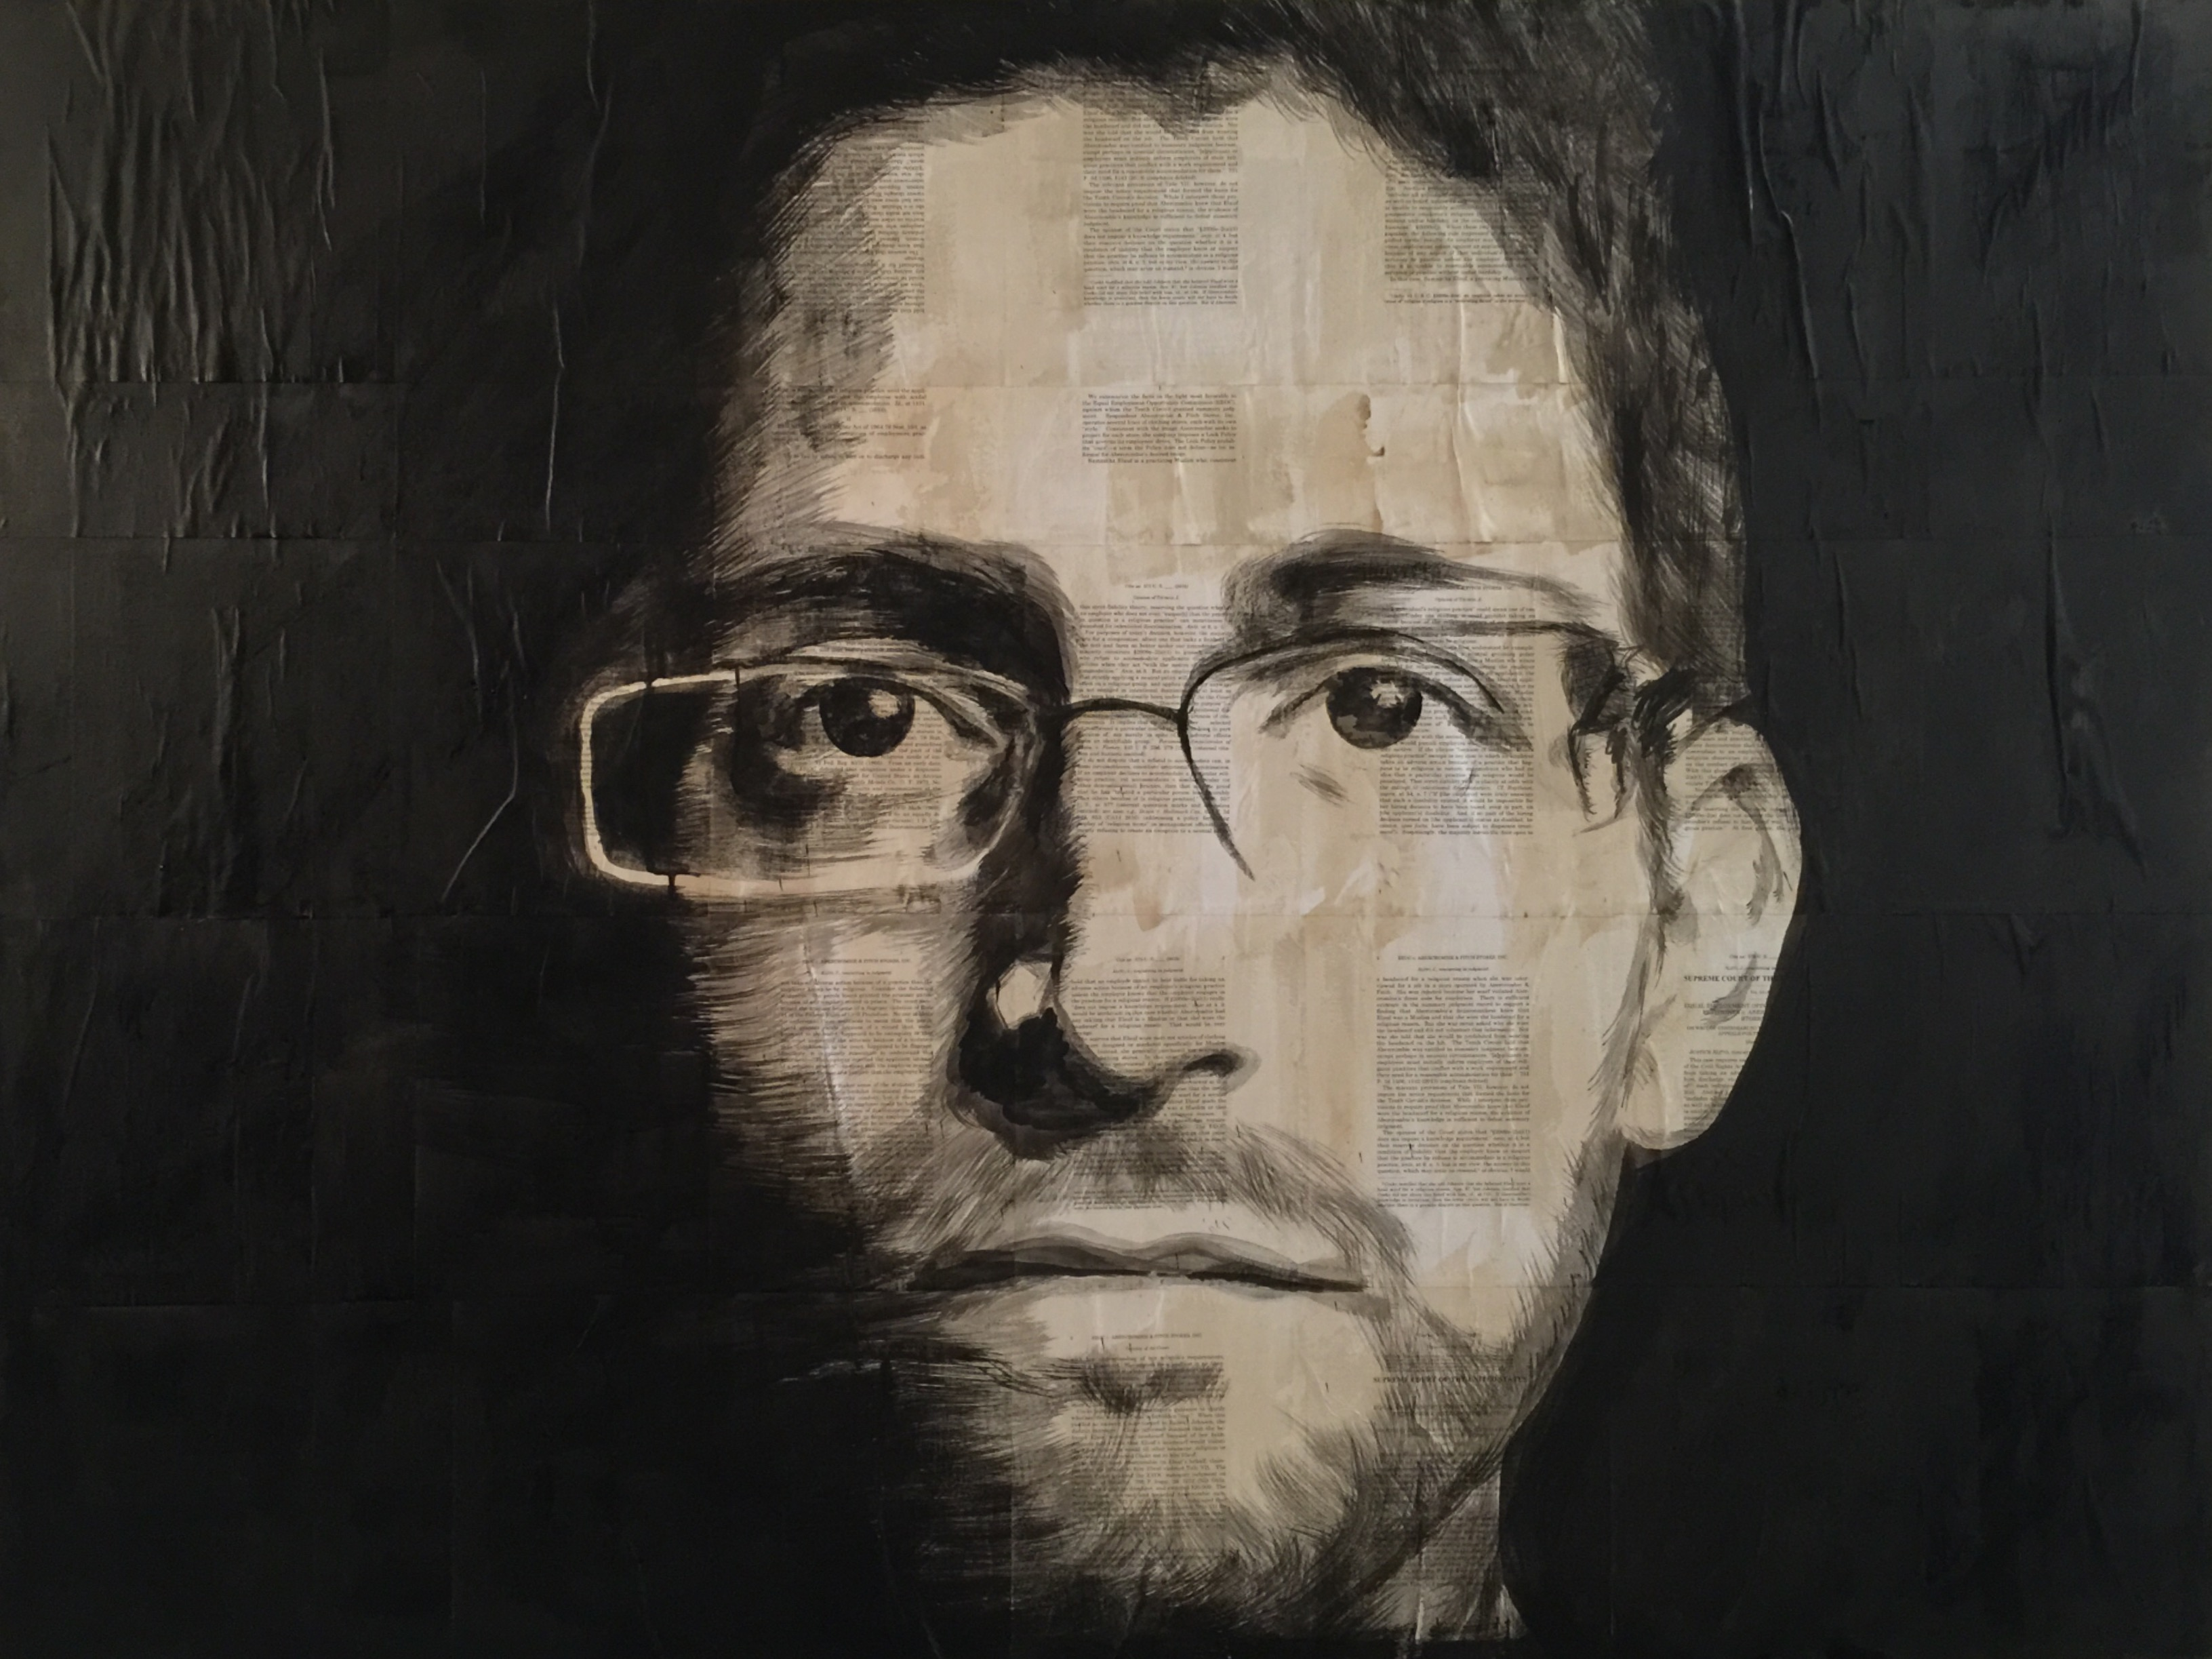 Exhibit 13: Edward Snowden